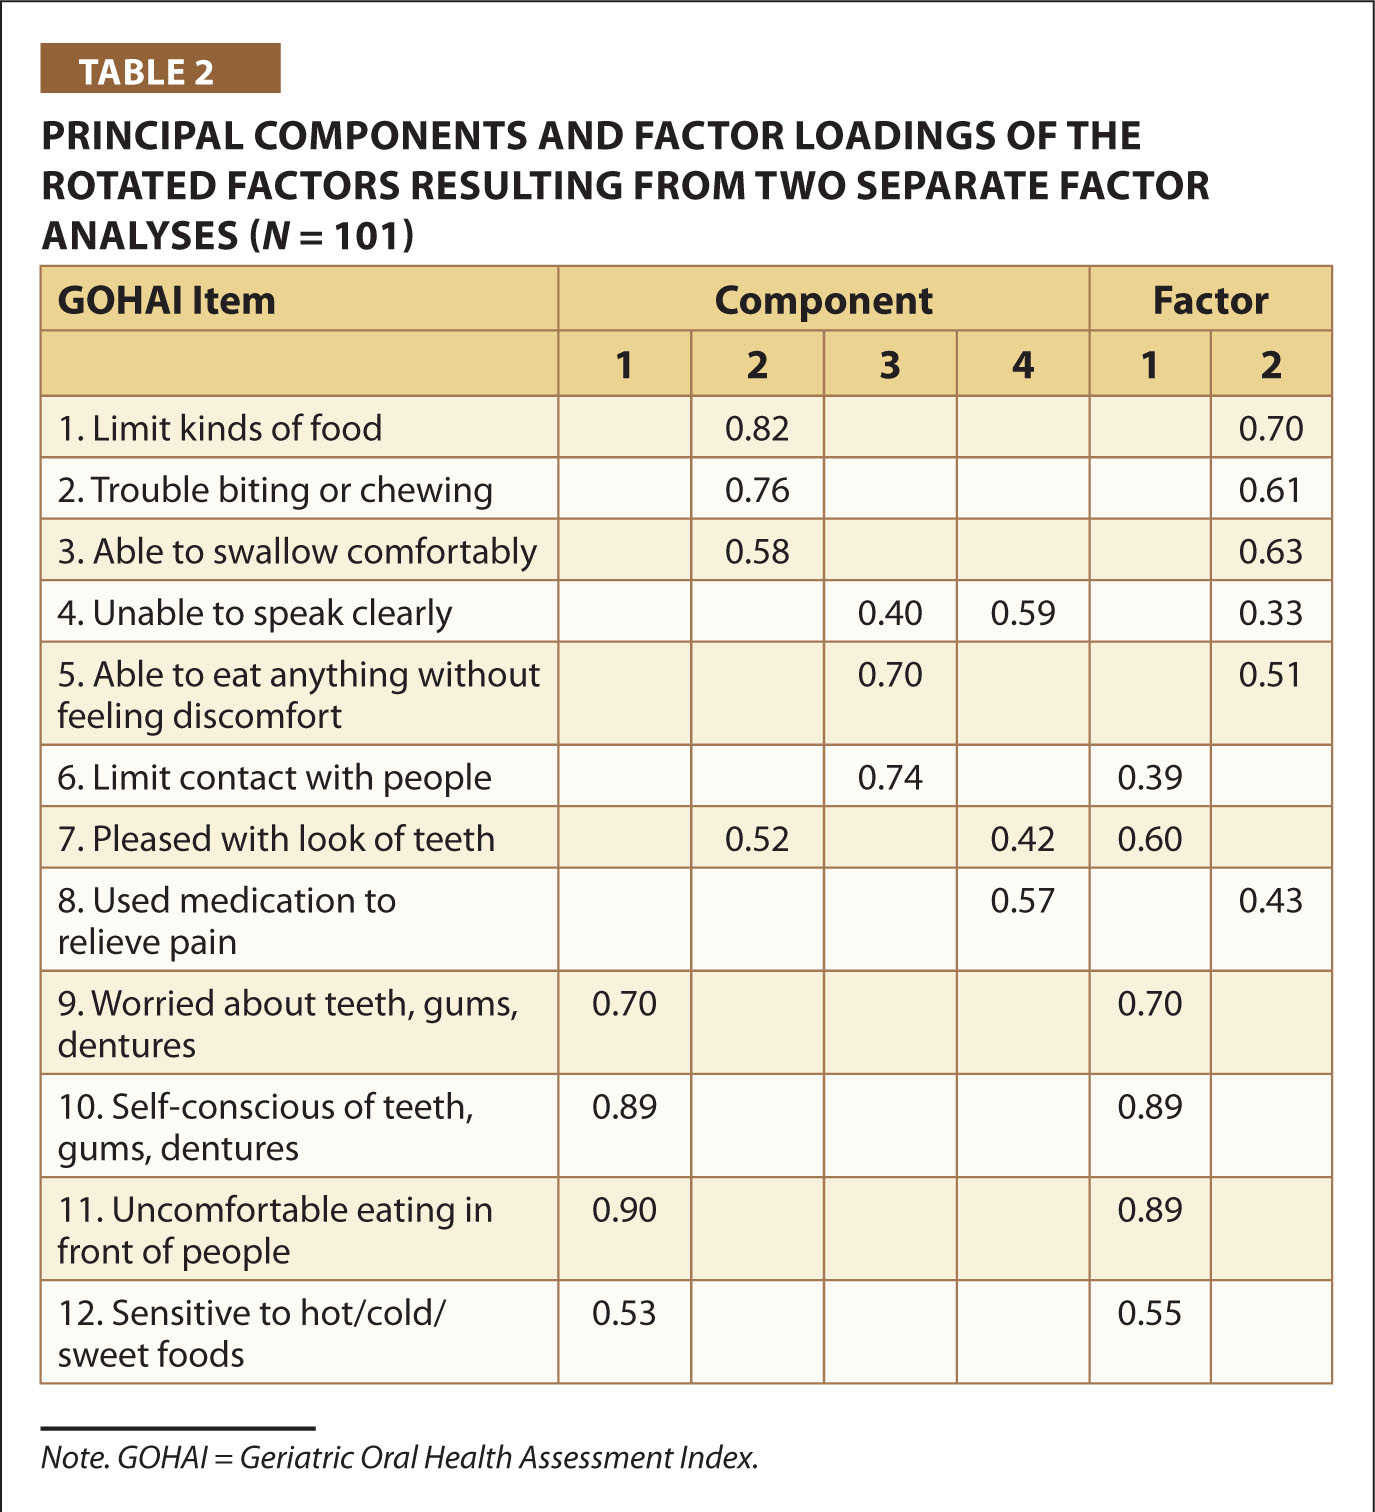 Principal Components and Factor Loadings of the Rotated Factors Resulting from Two Separate Factor Analyses (N = 101)